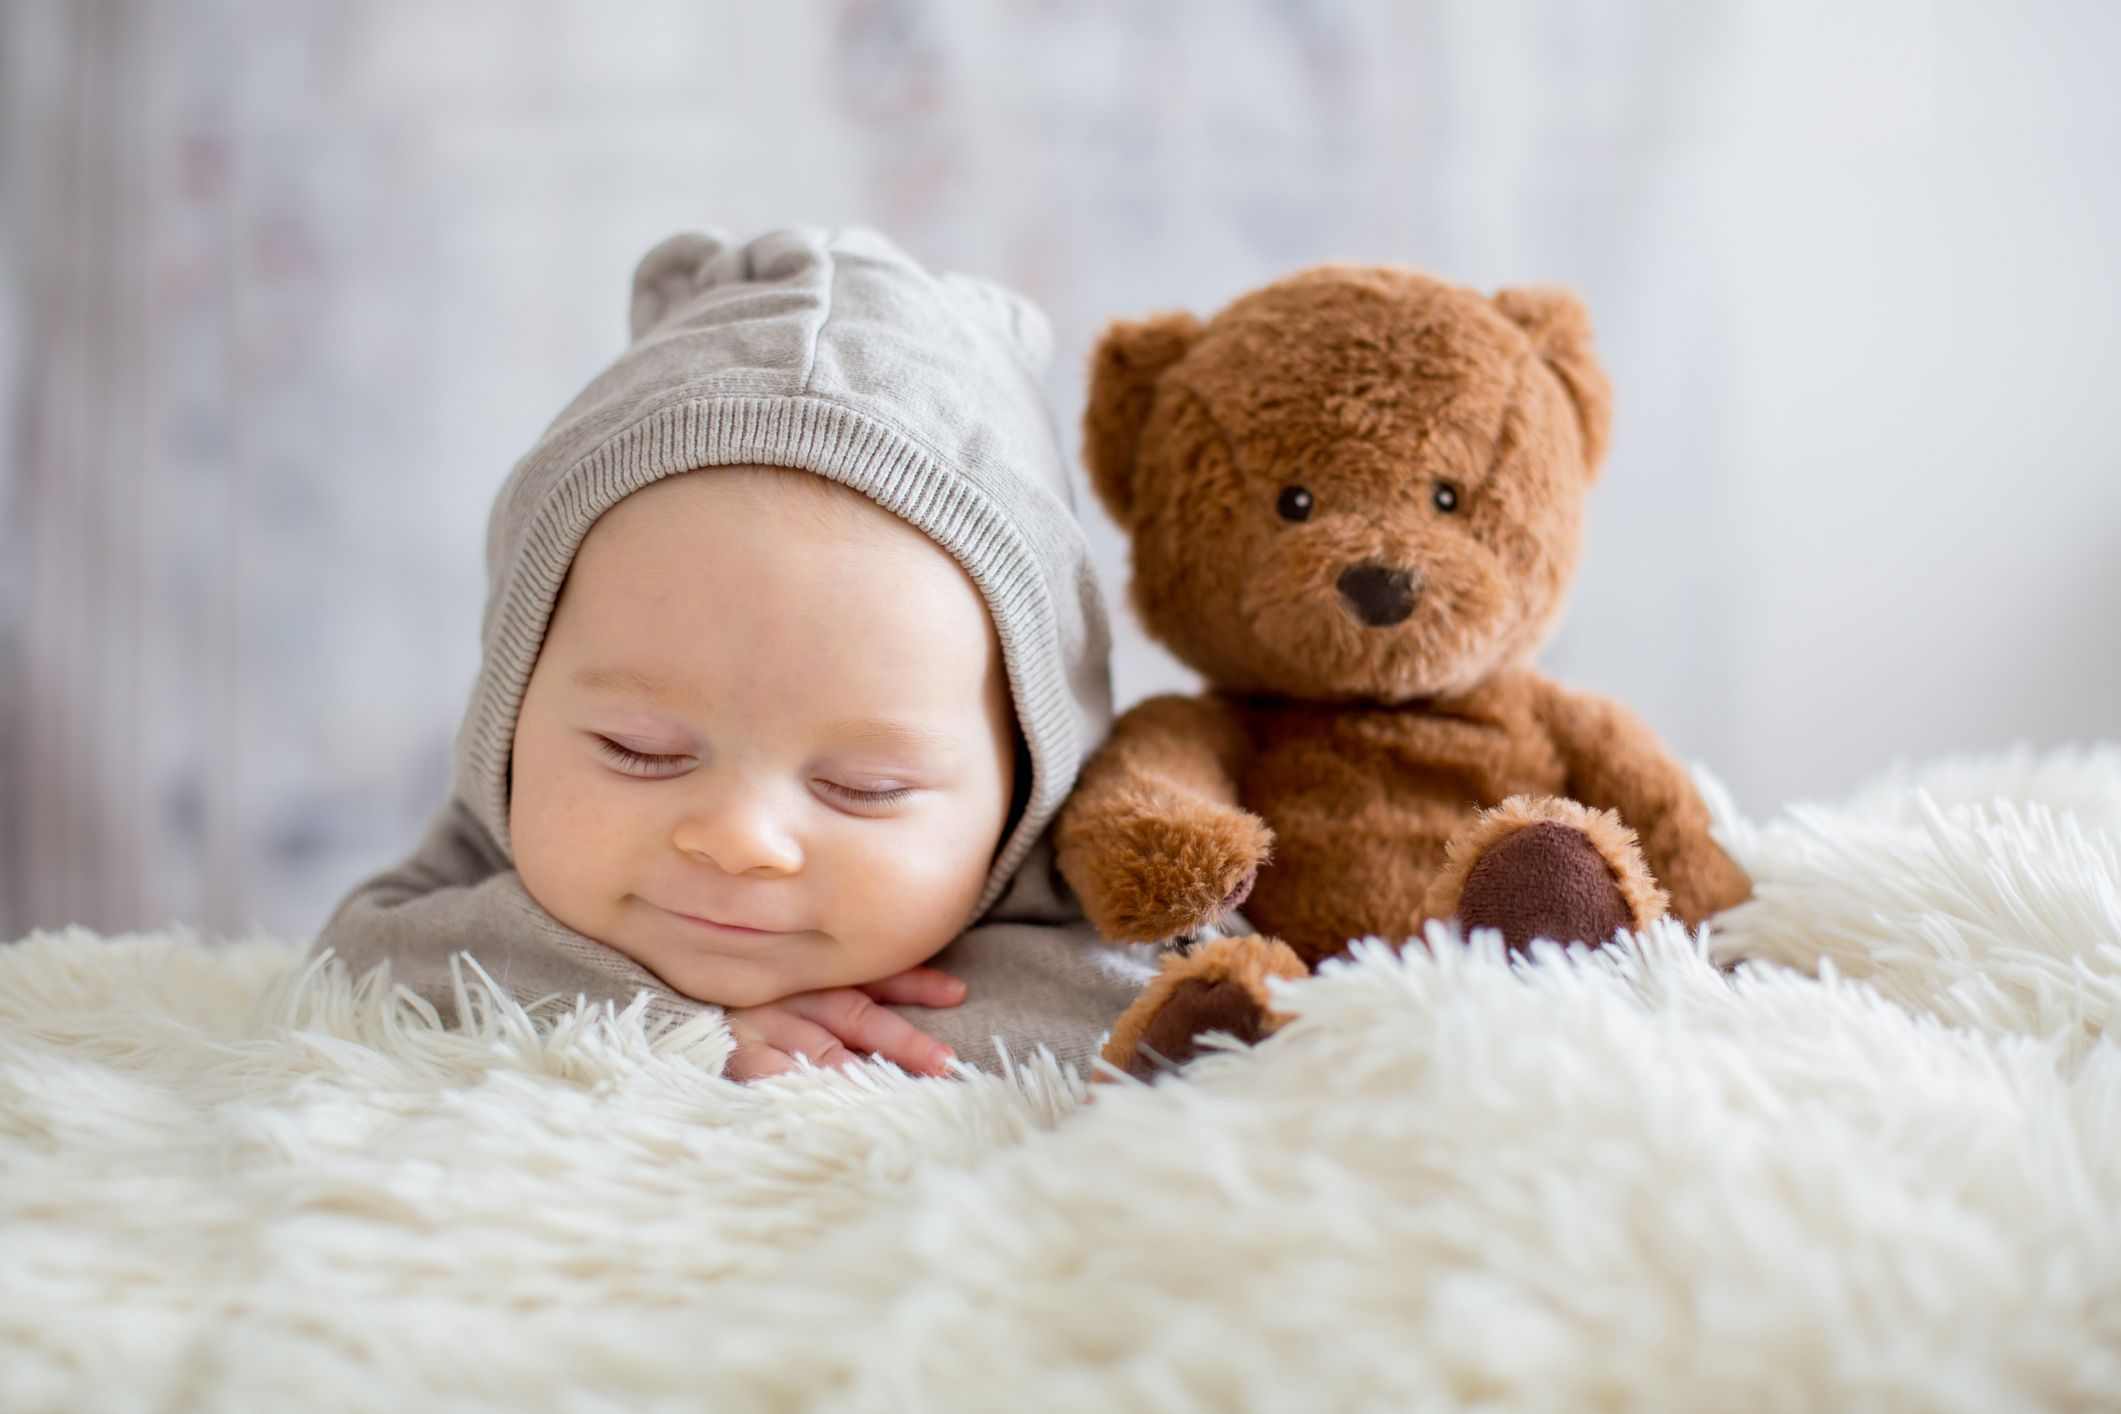 100 Baby Names That Will Be Super Popular in 2020